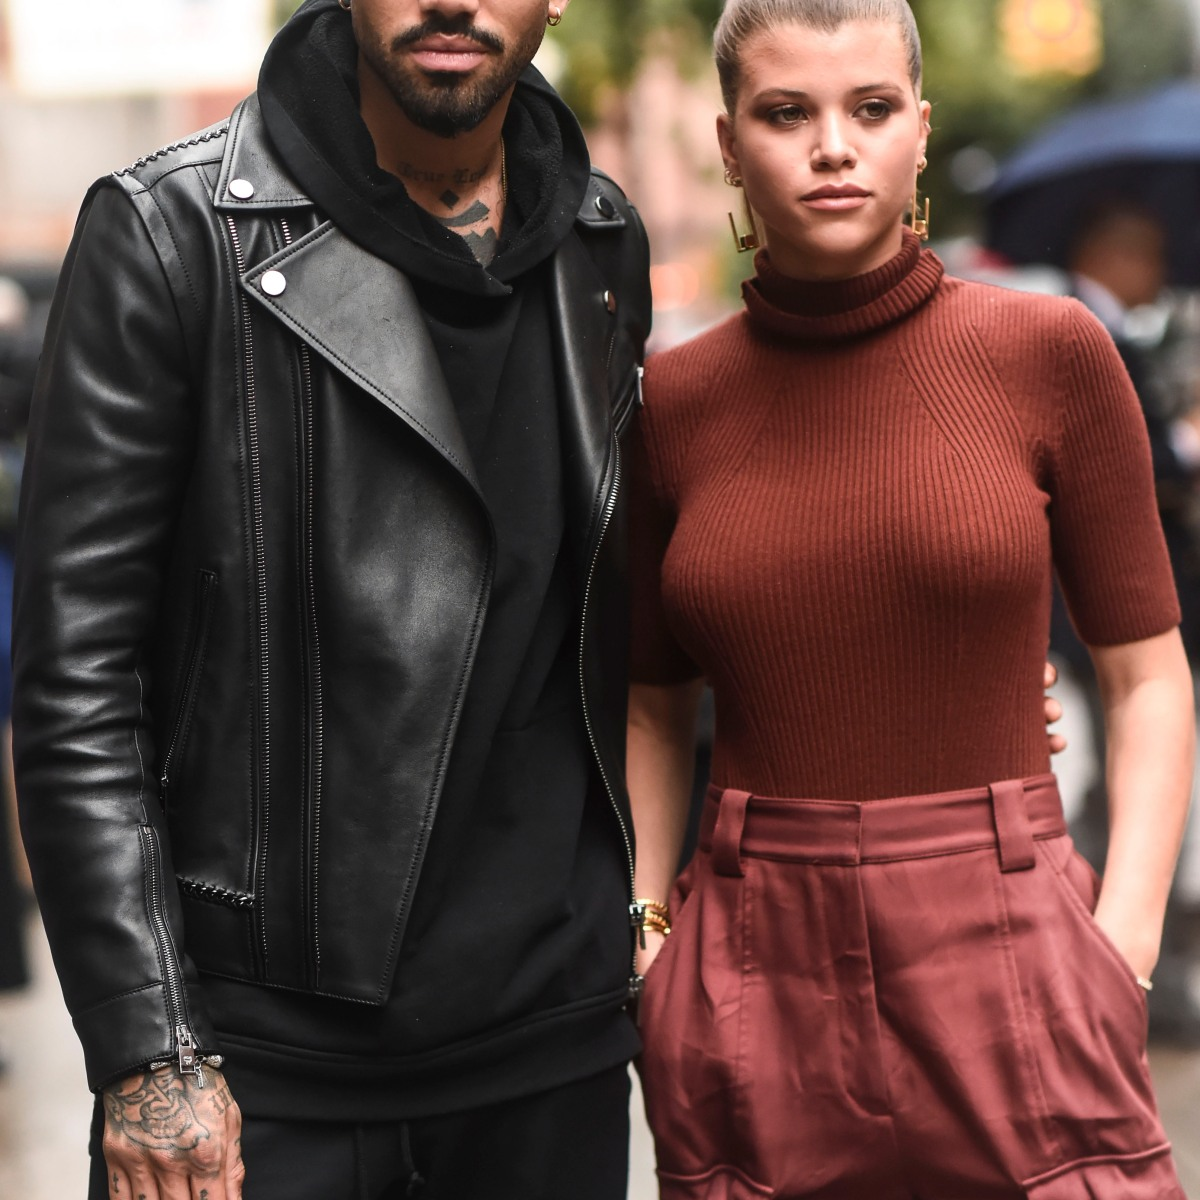 Sofia Richie's Family Tree Is Confusing Fans So We're Explaining It